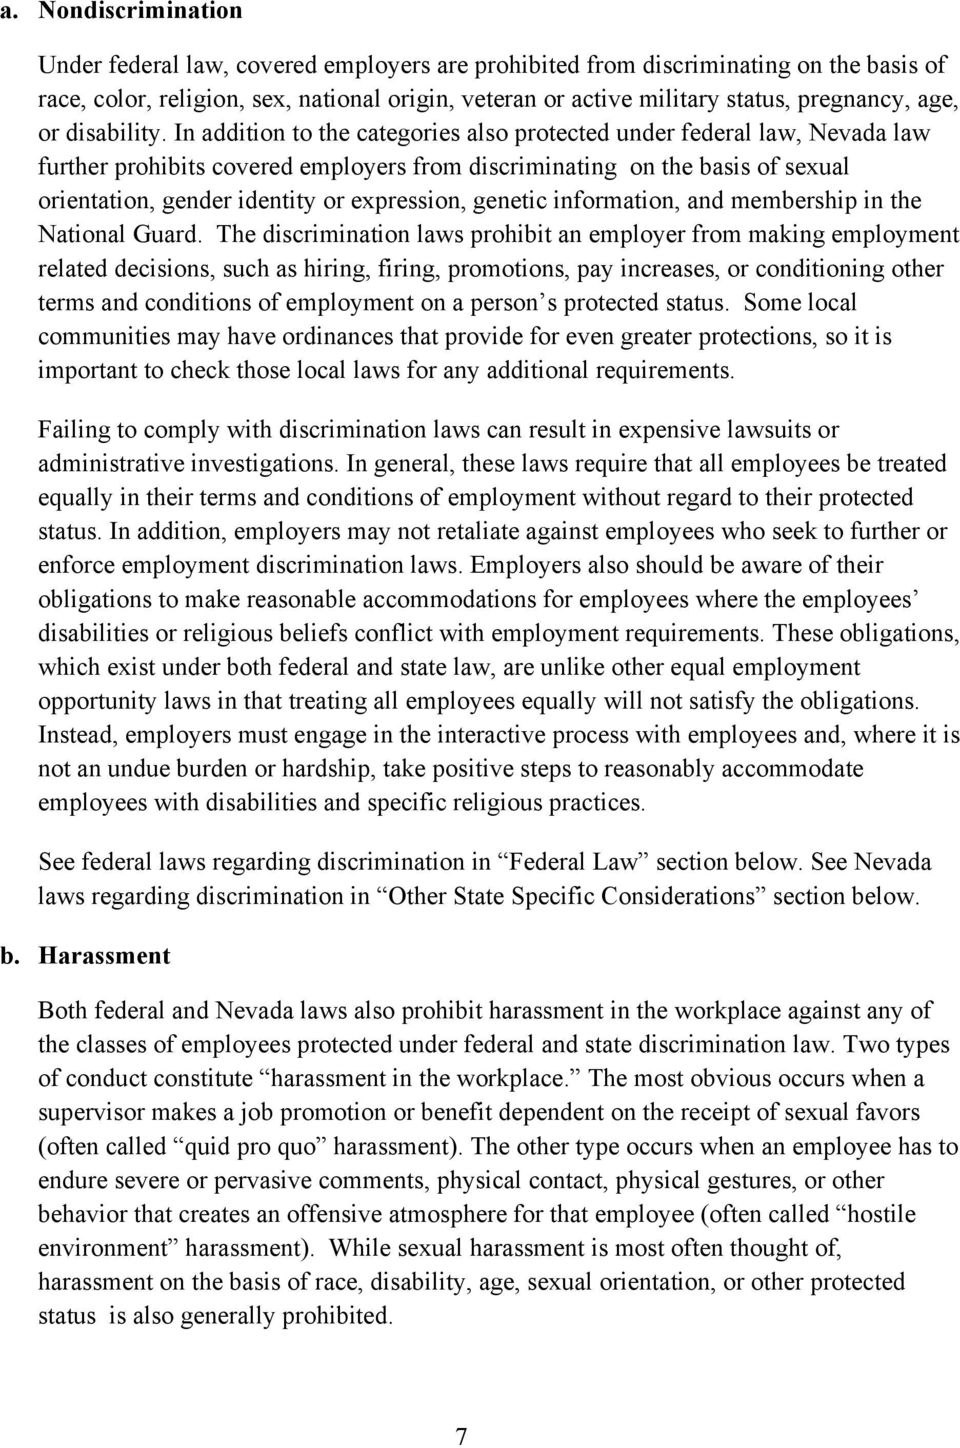 In addition to the categories also protected under federal law, Nevada law further prohibits covered employers from discriminating on the basis of sexual orientation, gender identity or expression,